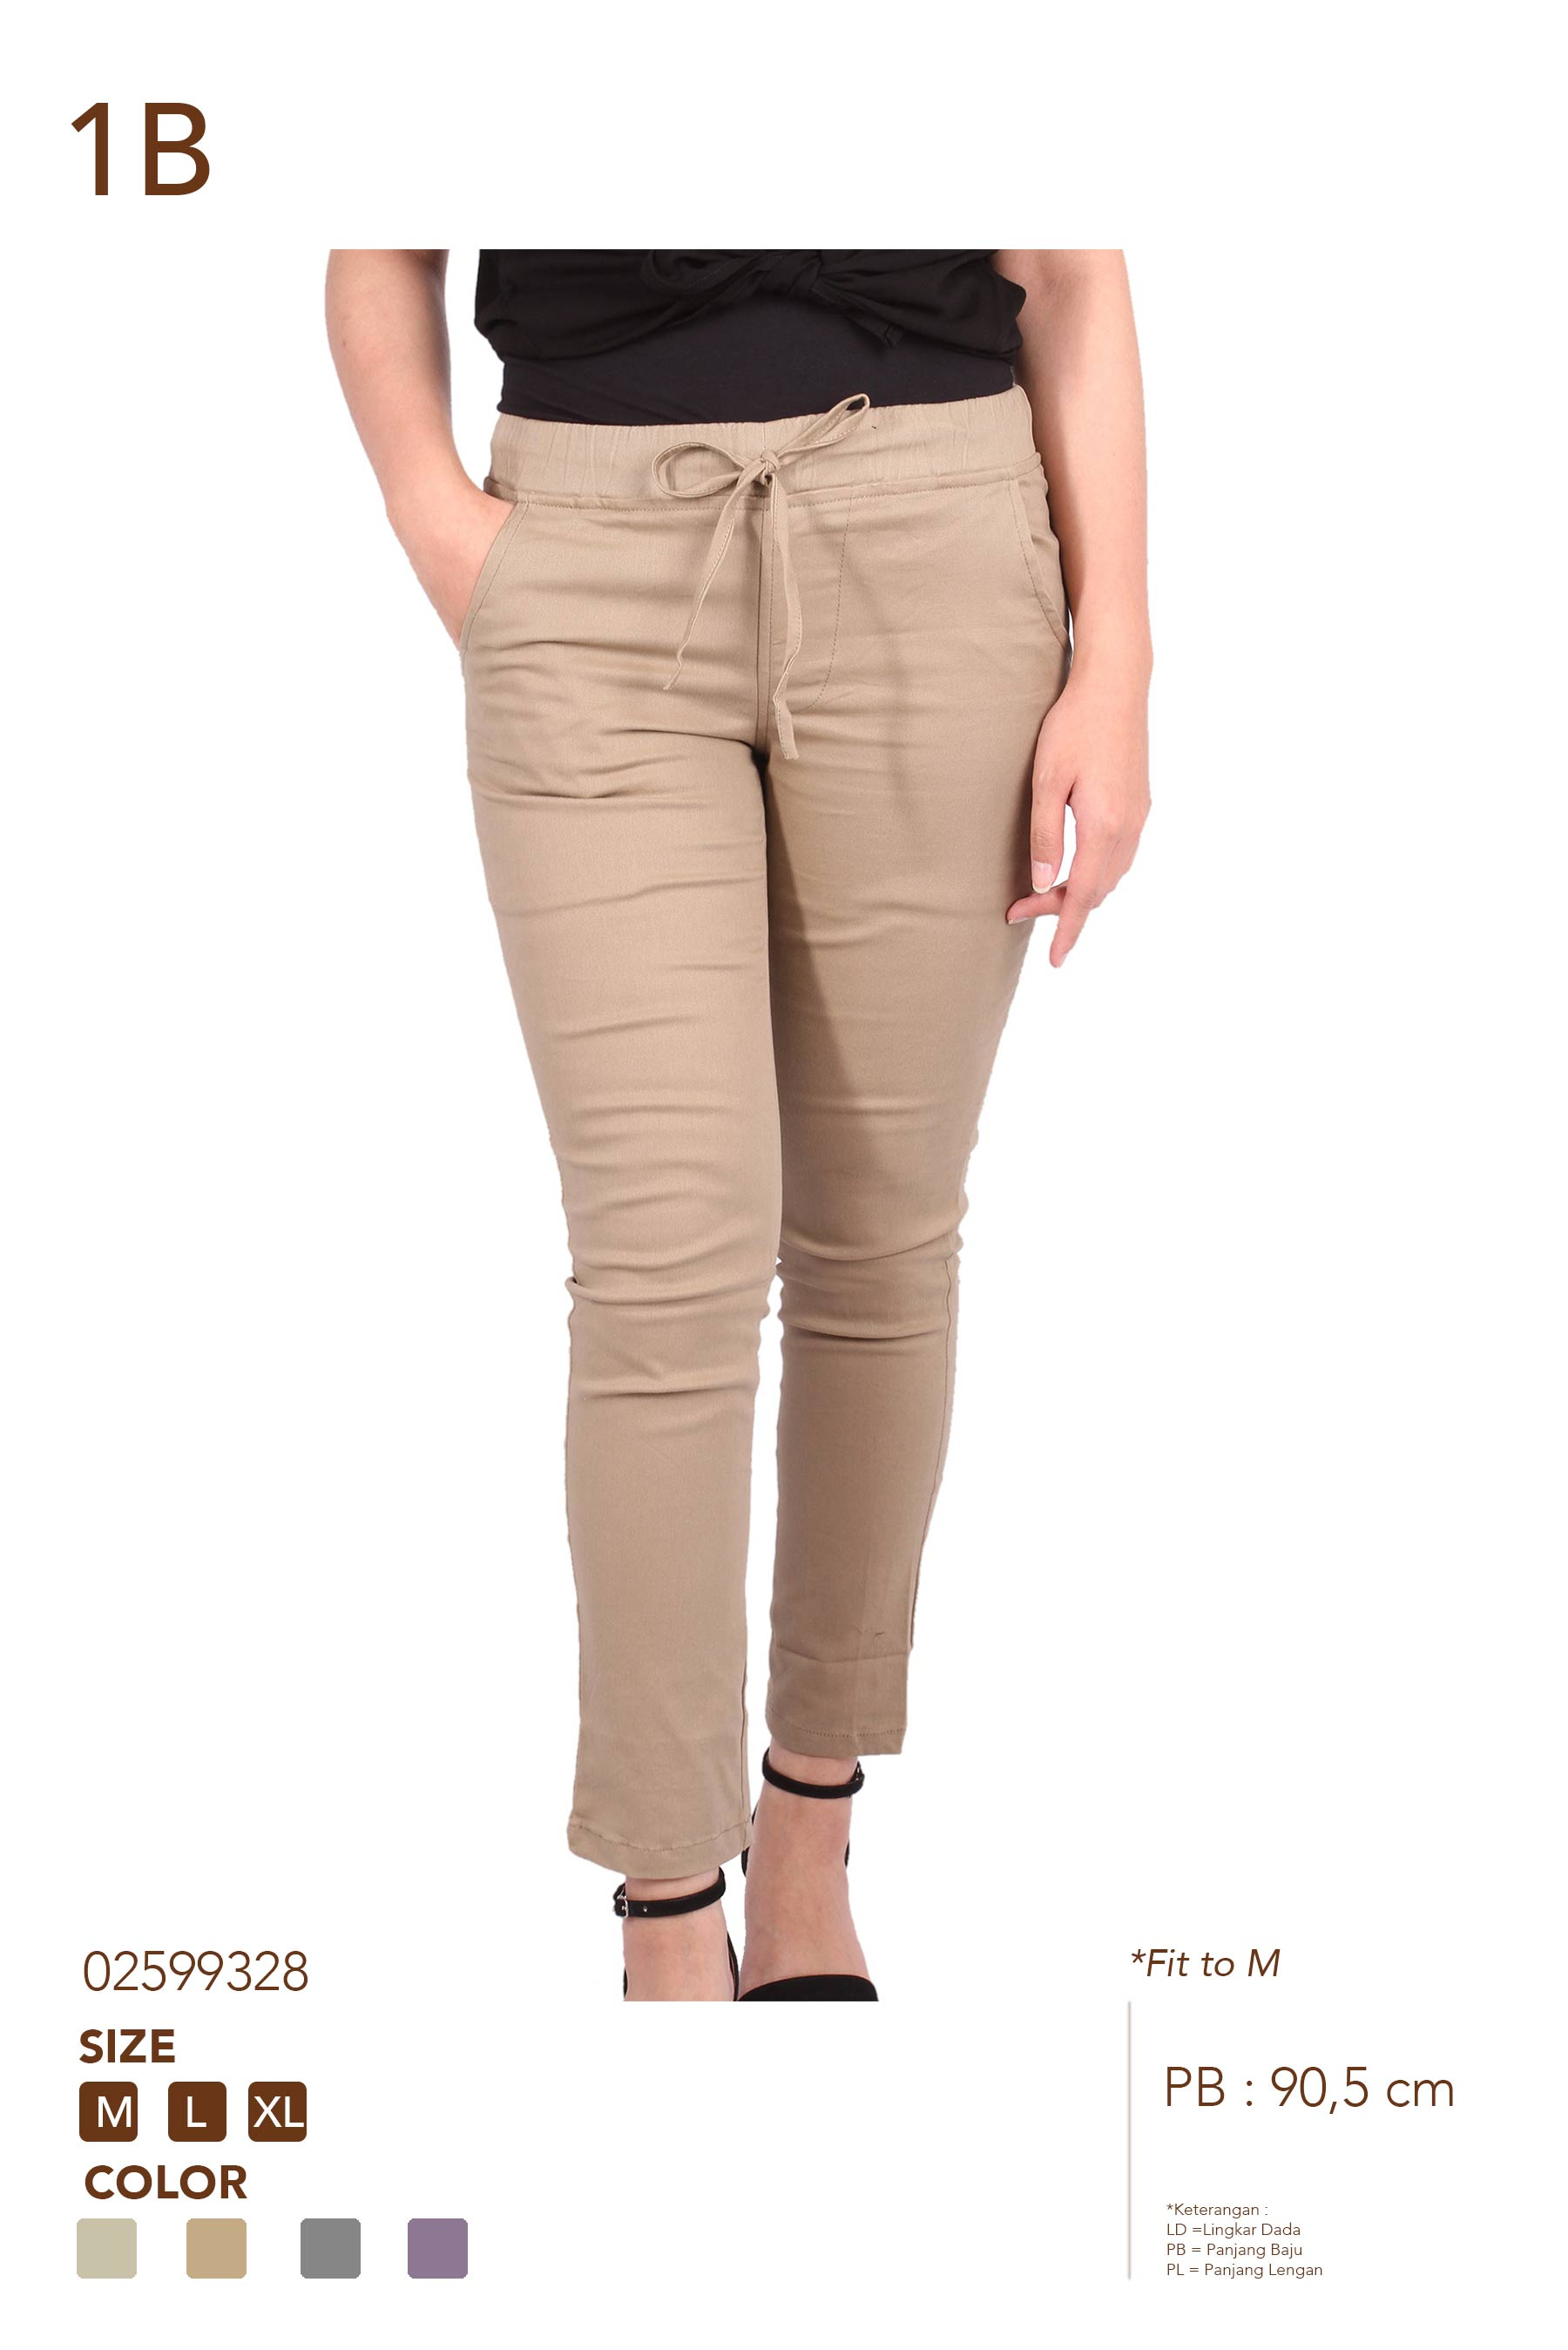 1B RM2003 CHINOS REPEAT FORMAL LONG PANTS RM2